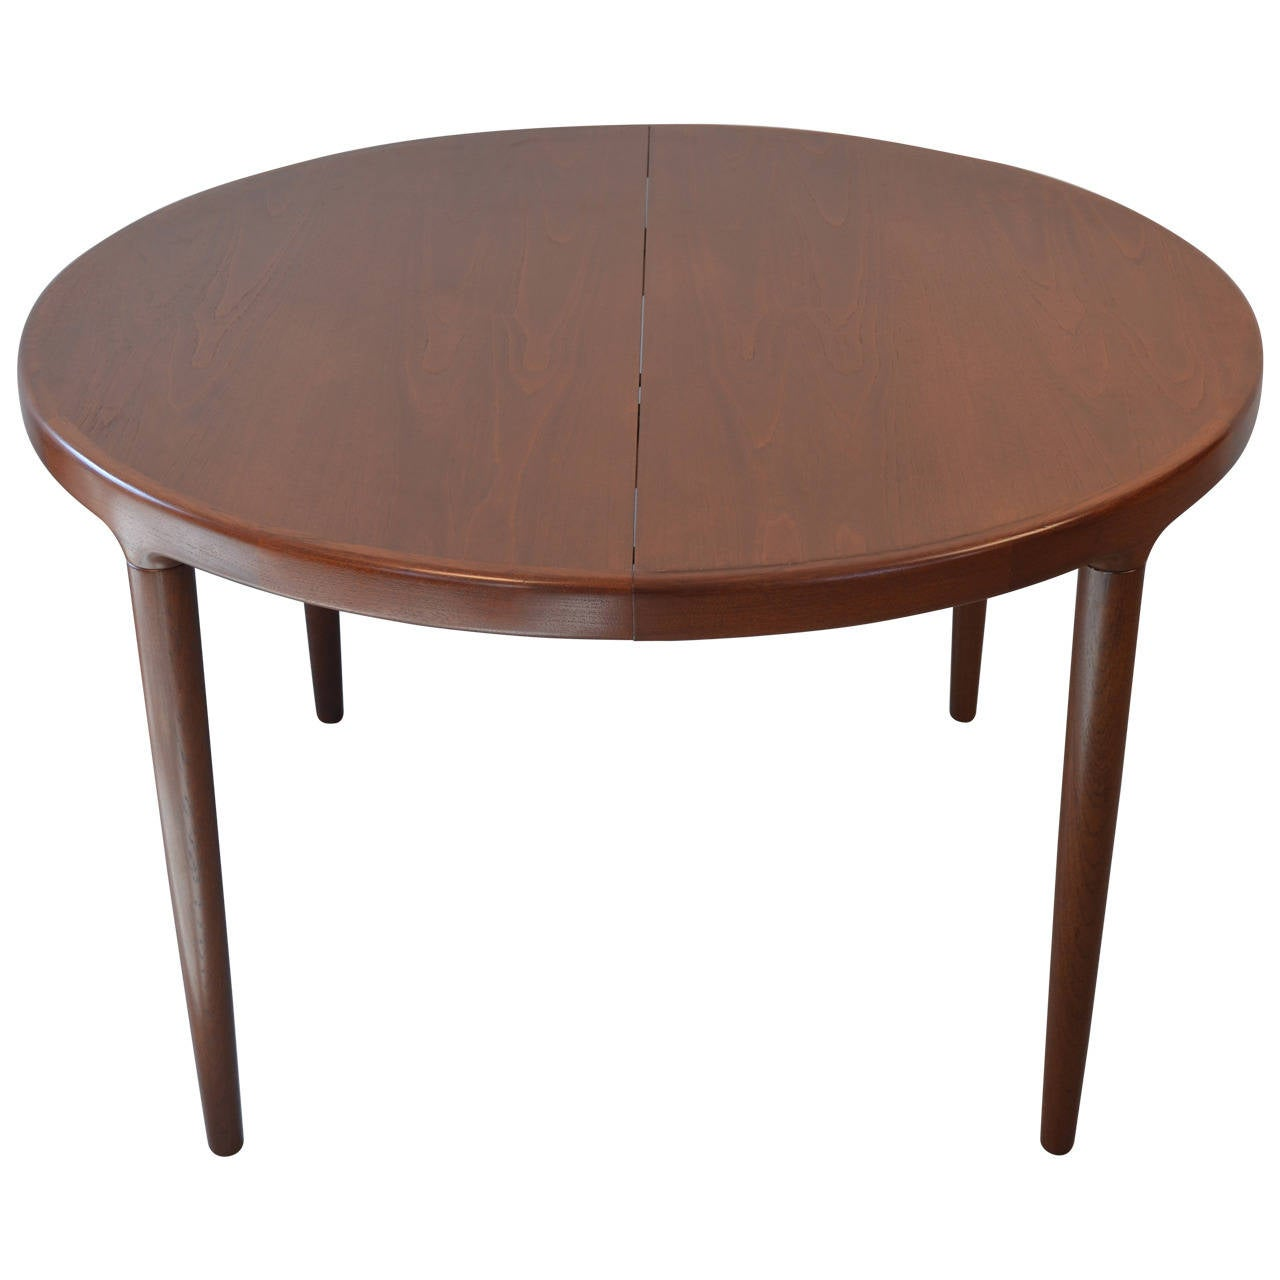 Round dining table with two leaves for sale at 1stdibs for Dining table with two leaves